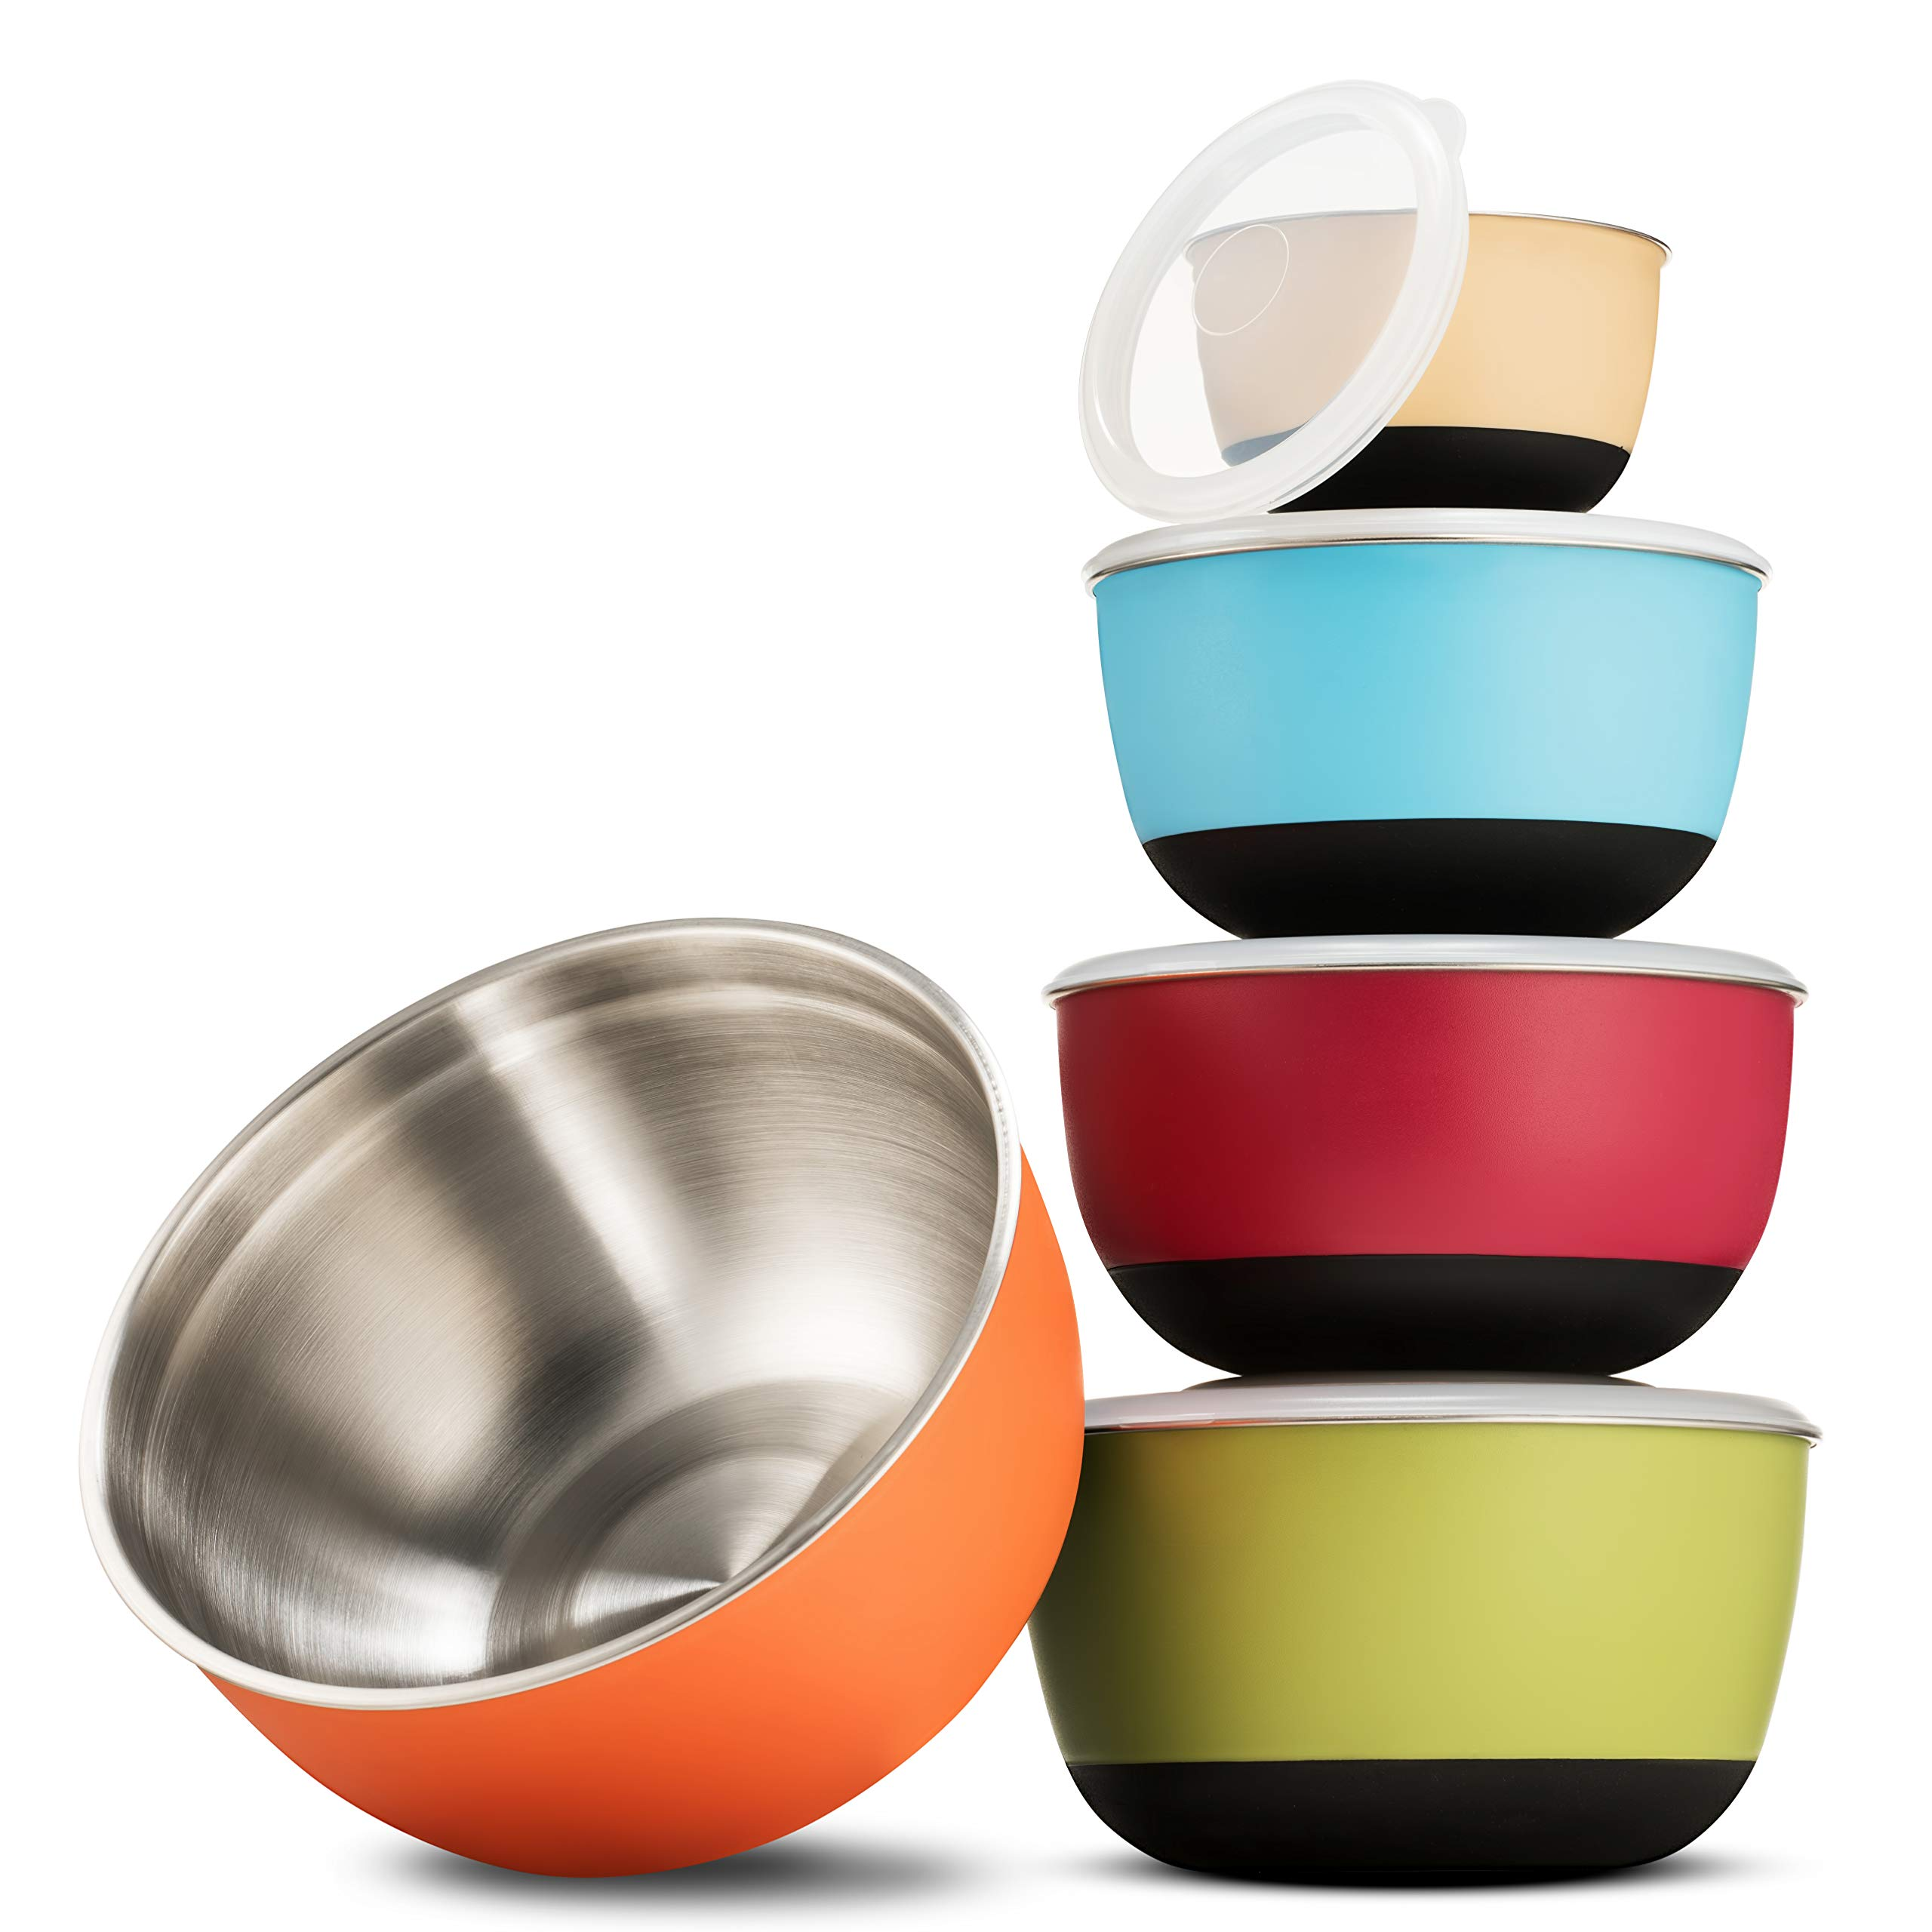 Premium Multicolor Stainless Steel Mixing Bowls with Airtight Lids (Set of 5) Nesting Bowls for Space Saving Storage, Non-Slip Bottoms for Stability, Mixing Bowl Set For Cooking, Baking & Food Storage by FINEDINE